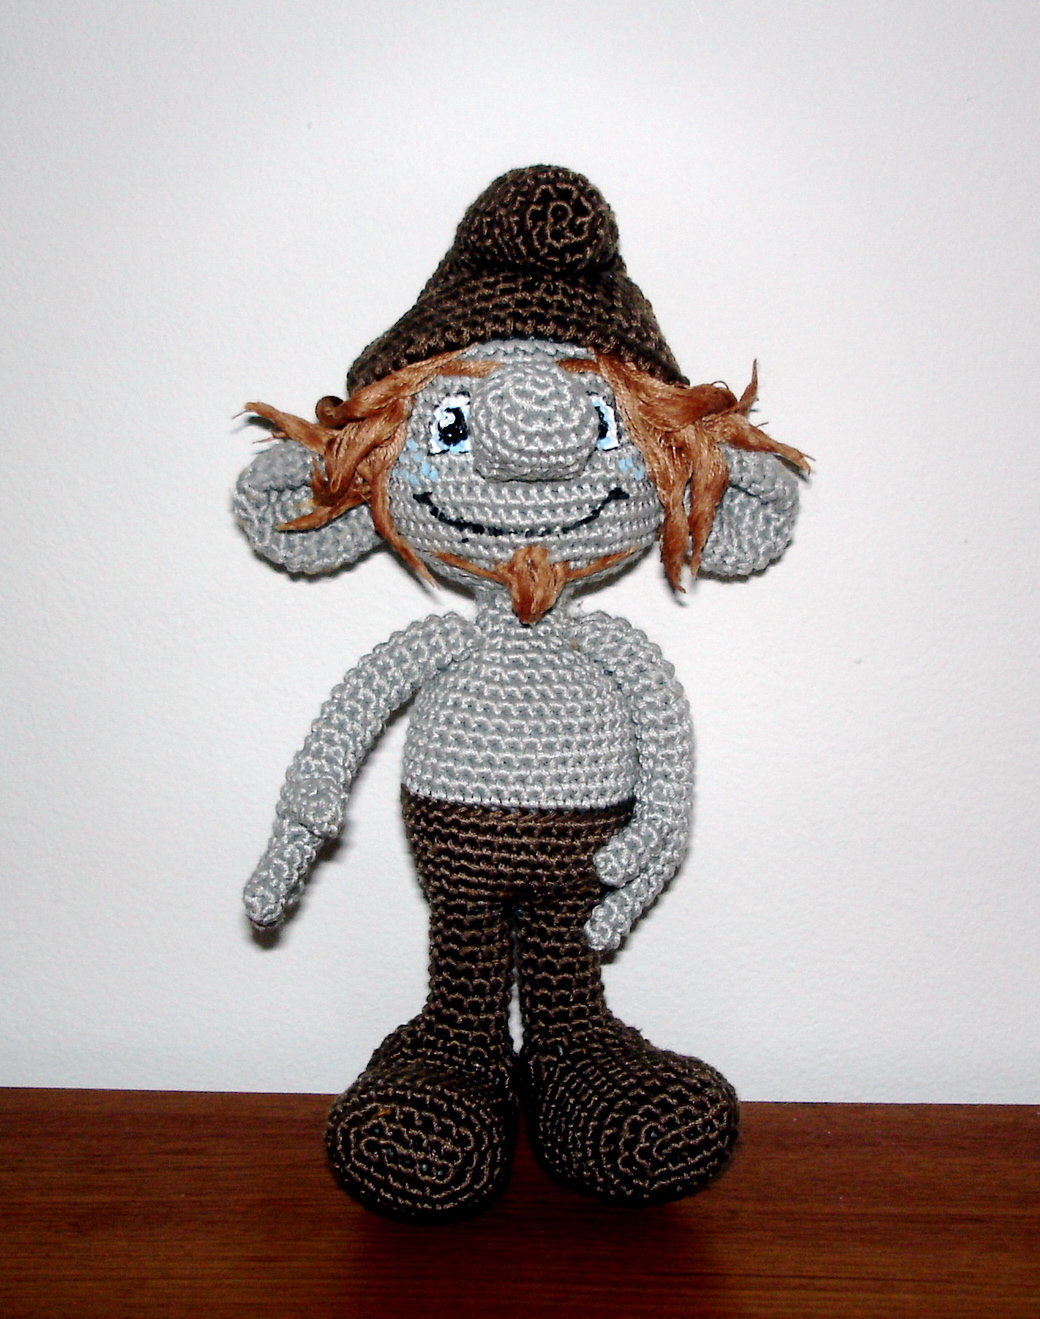 Free smurf crochet amigurumibb by cheche hackus smurf bankloansurffo Image collections